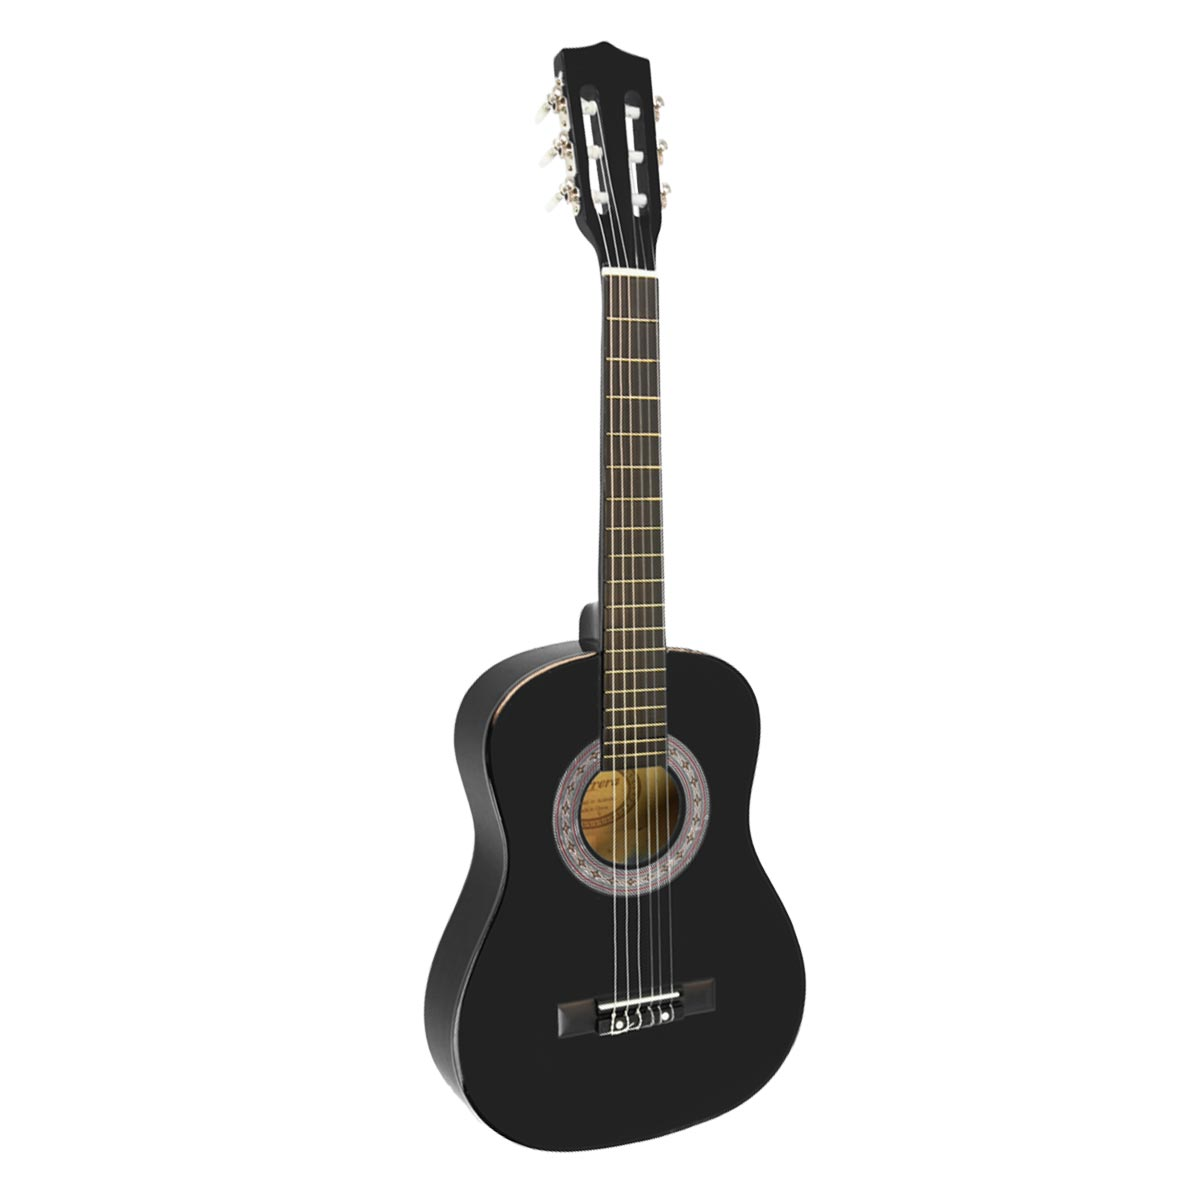 Karrera 34in Acoustic Children no cut Guitar - Black